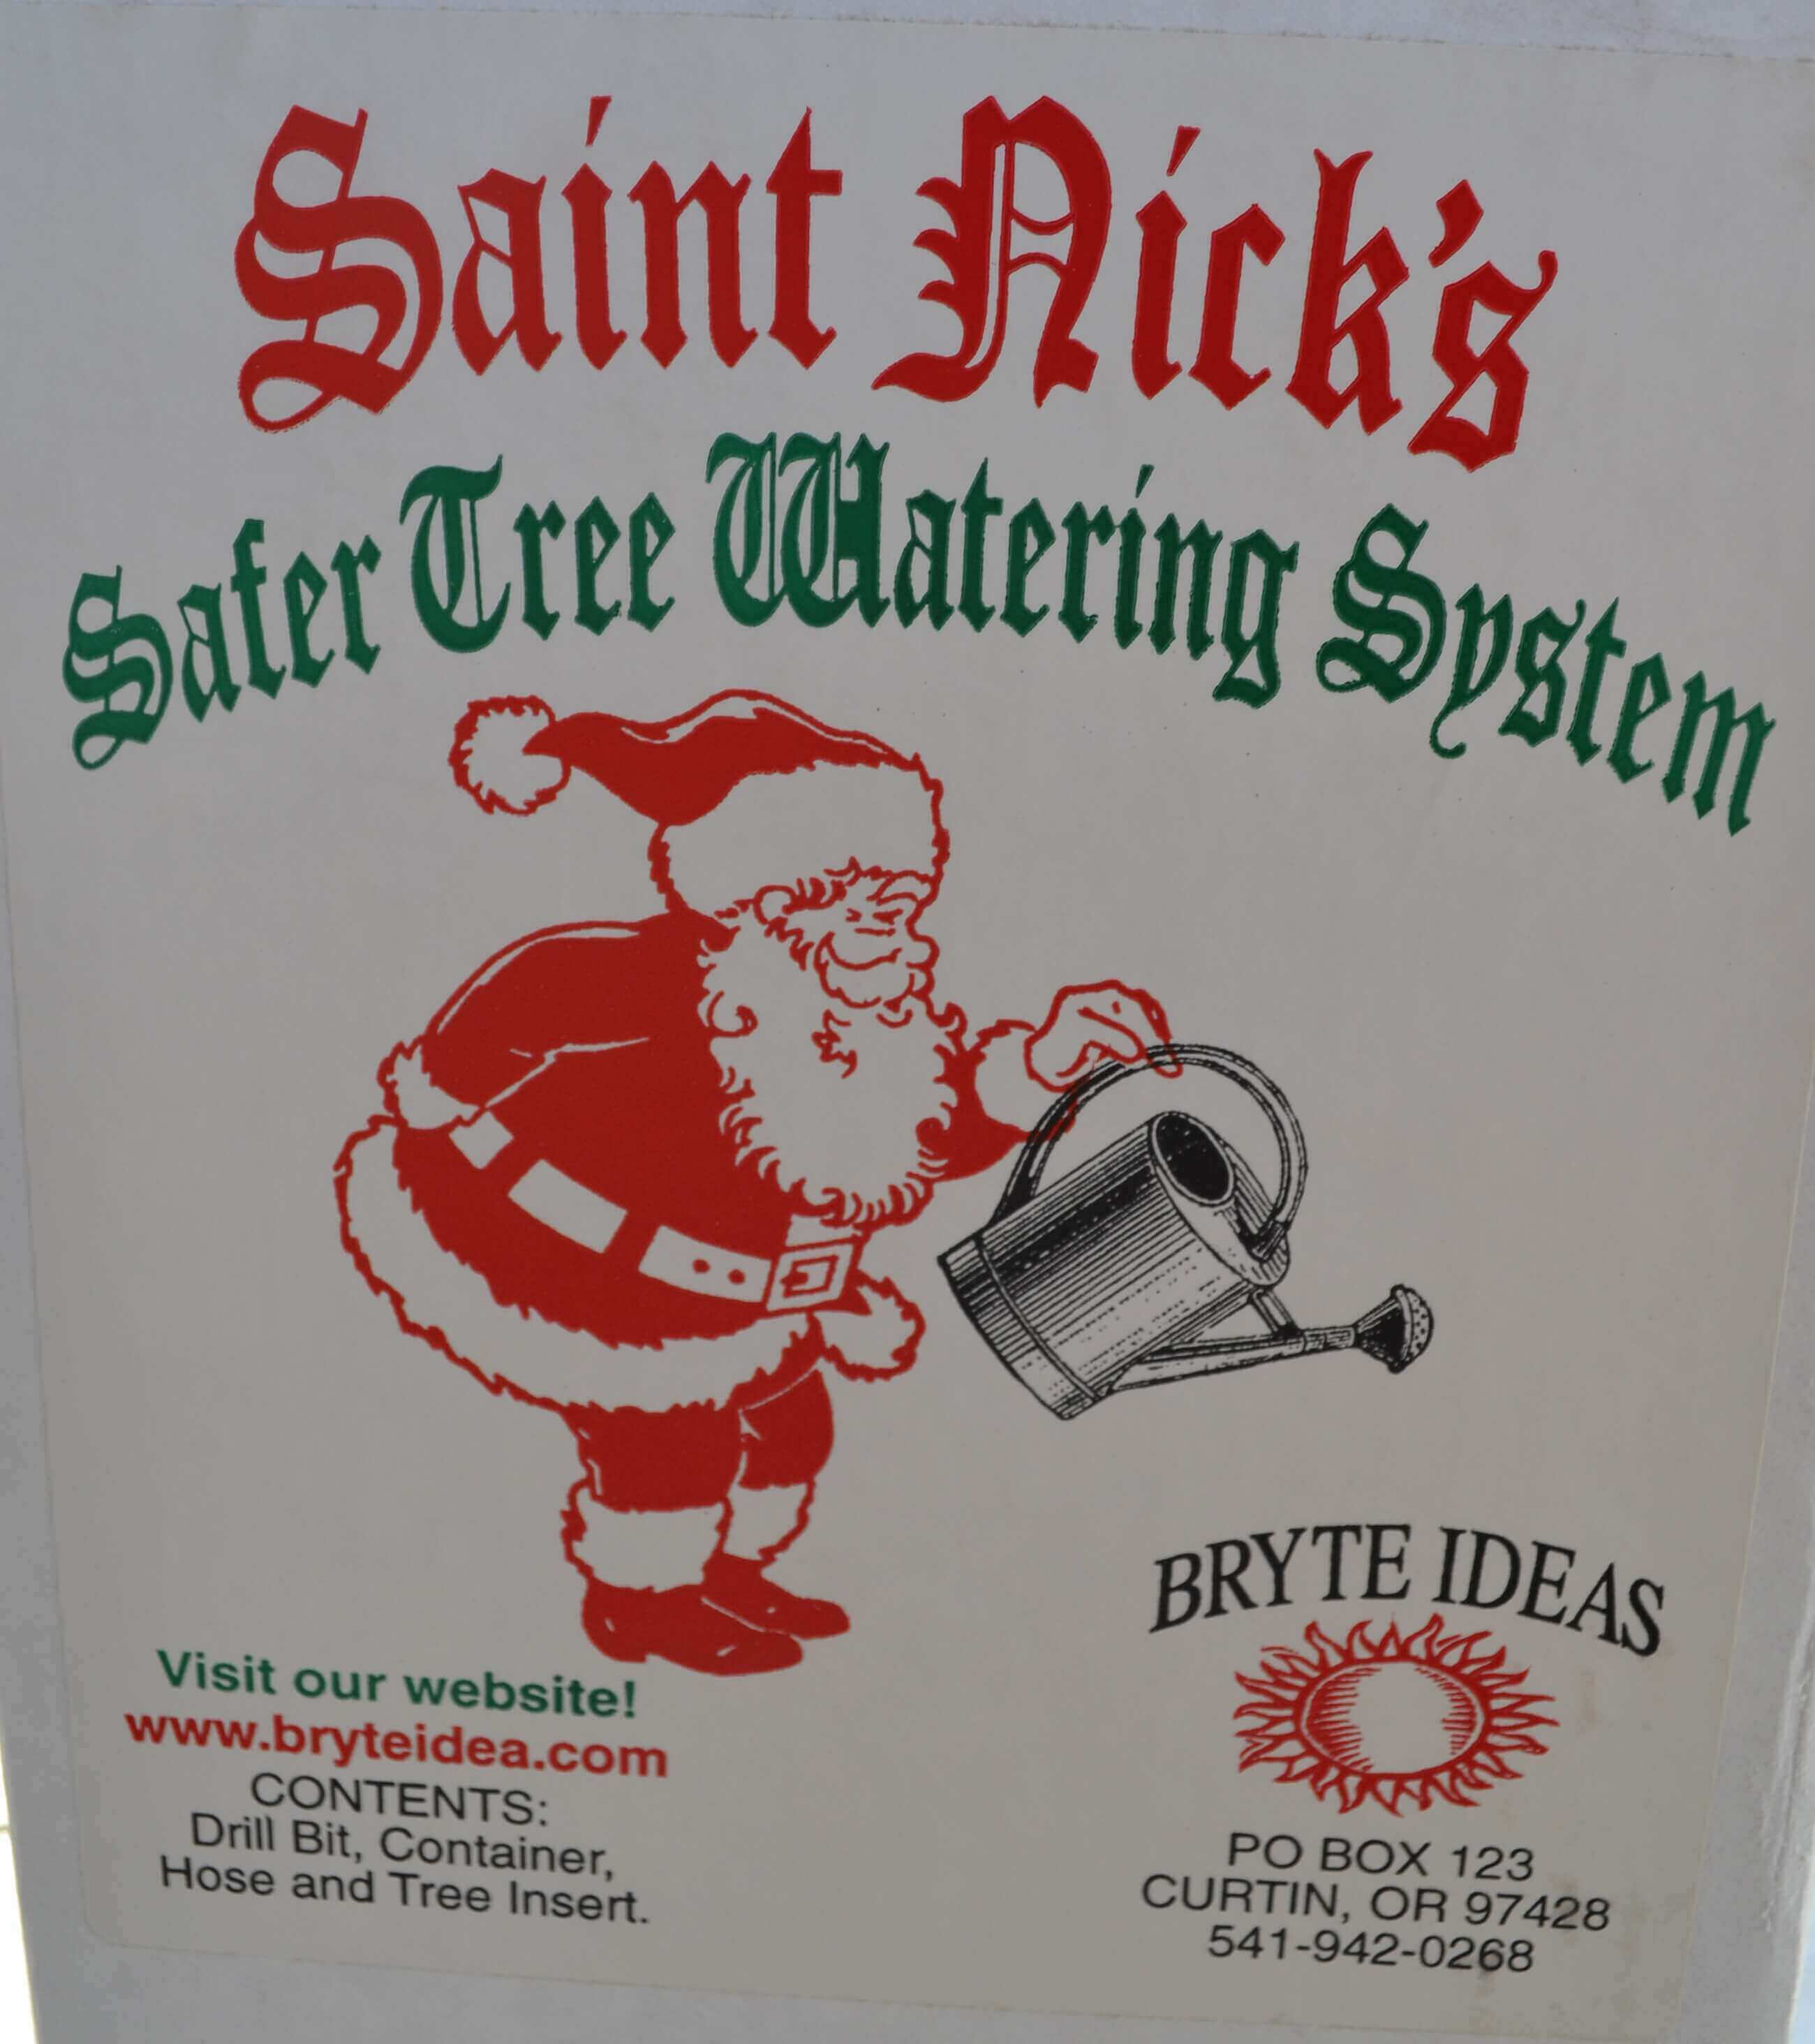 Saint Nicks Christmas tree Watering System Box  > 					<hr> 				</div> 			</div>  		</div> 	</div>   </section> <!--SERVICE SECTION END-->  </section> <!-- ============================================================================= Contact Us SECTION START ============================================================================= --> <section id=